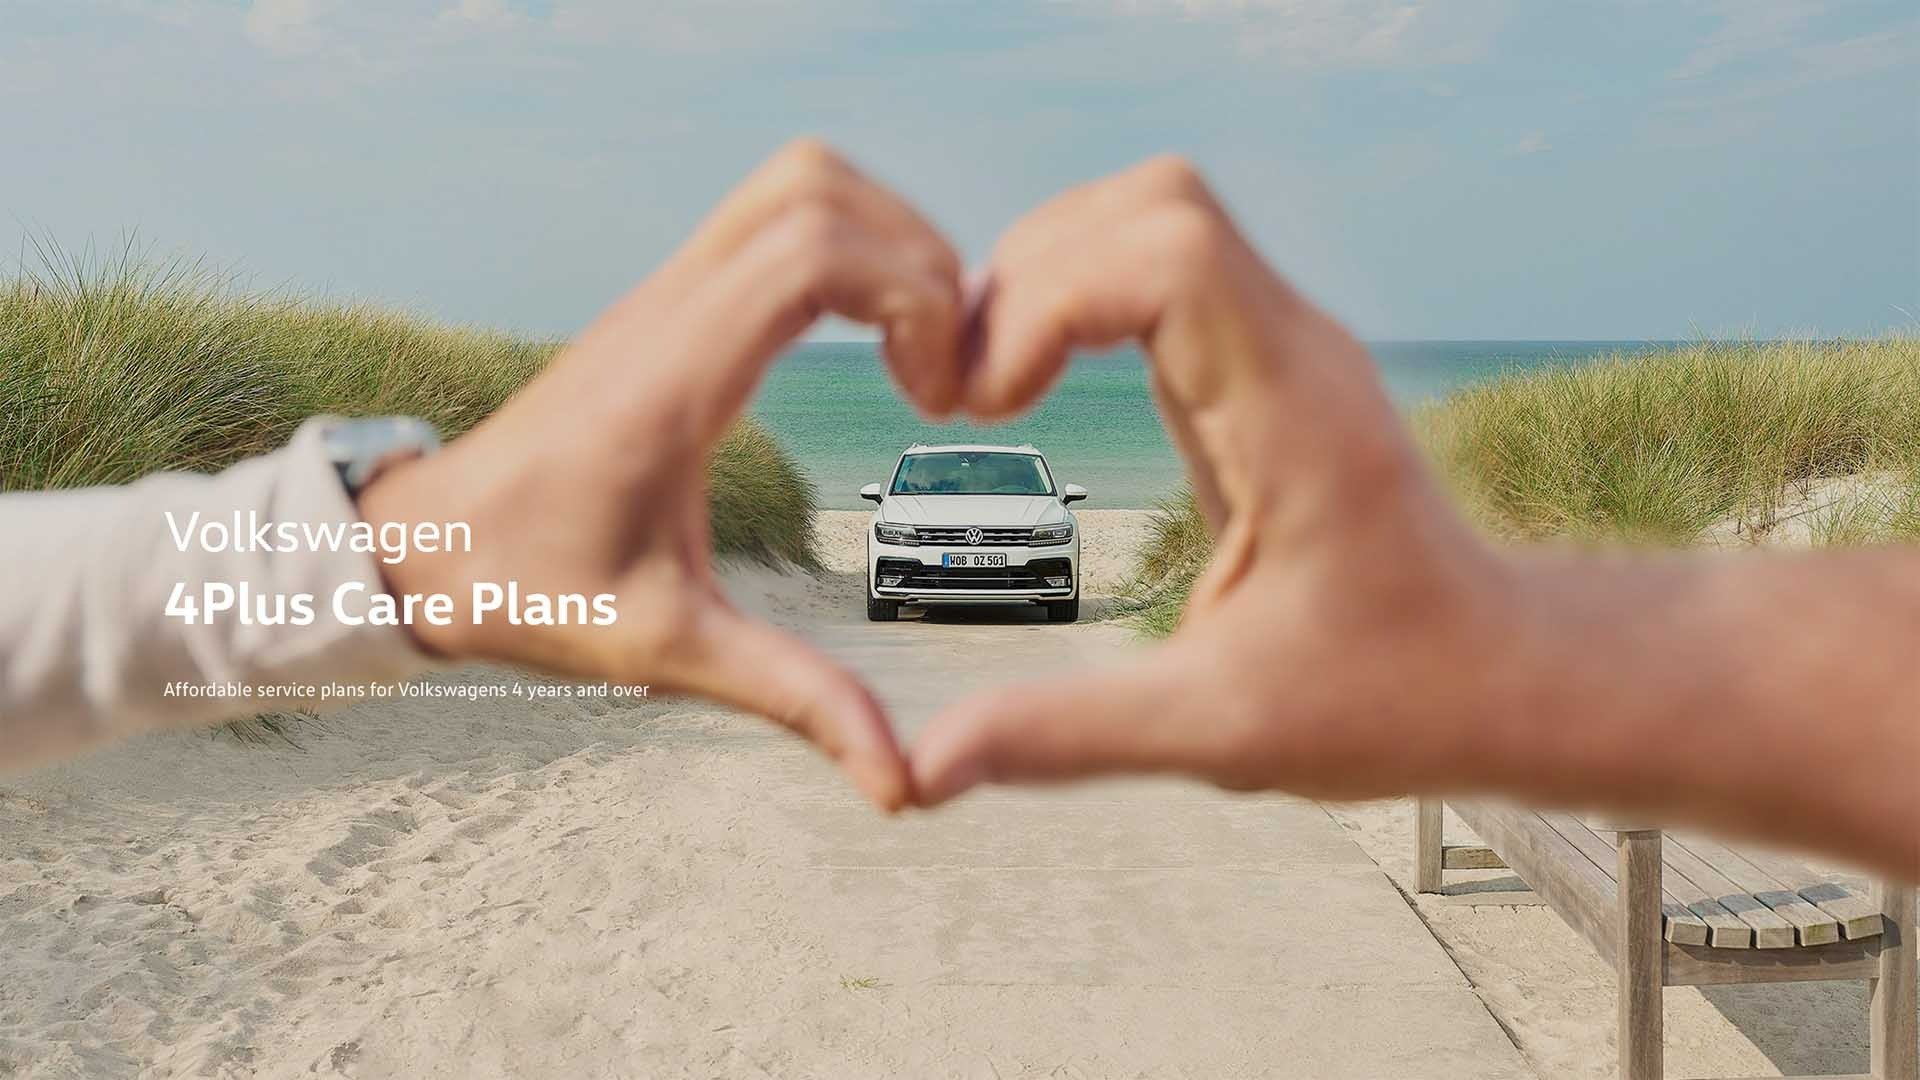 A Volkswagen on the beach as seen through two hands forming a heart shape